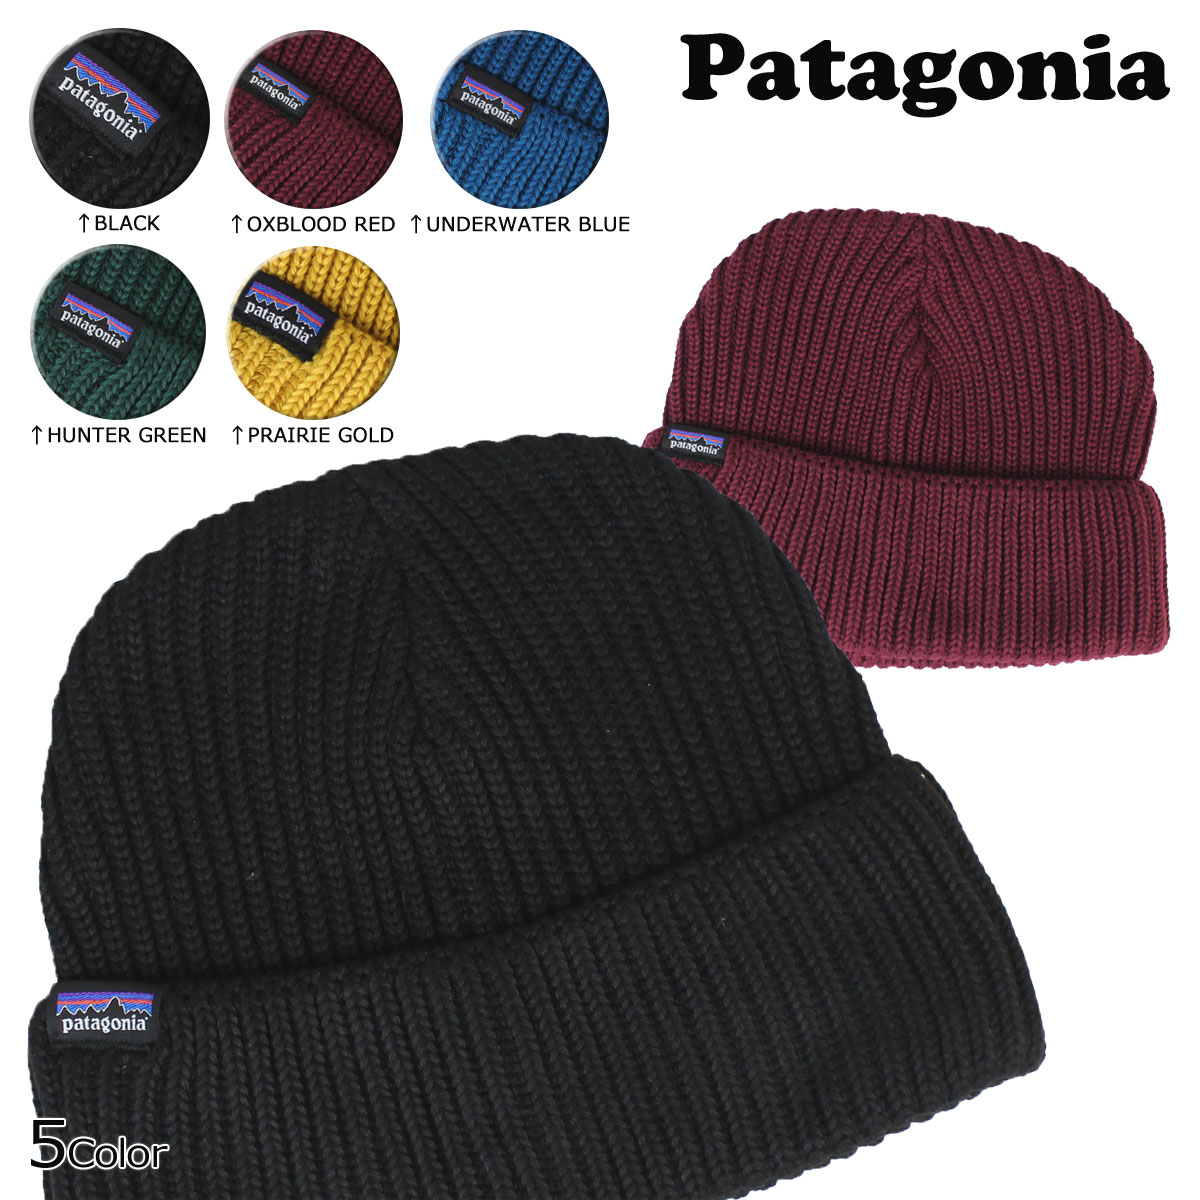 Patagonia s business activities and products are carried in this policy e909449503a